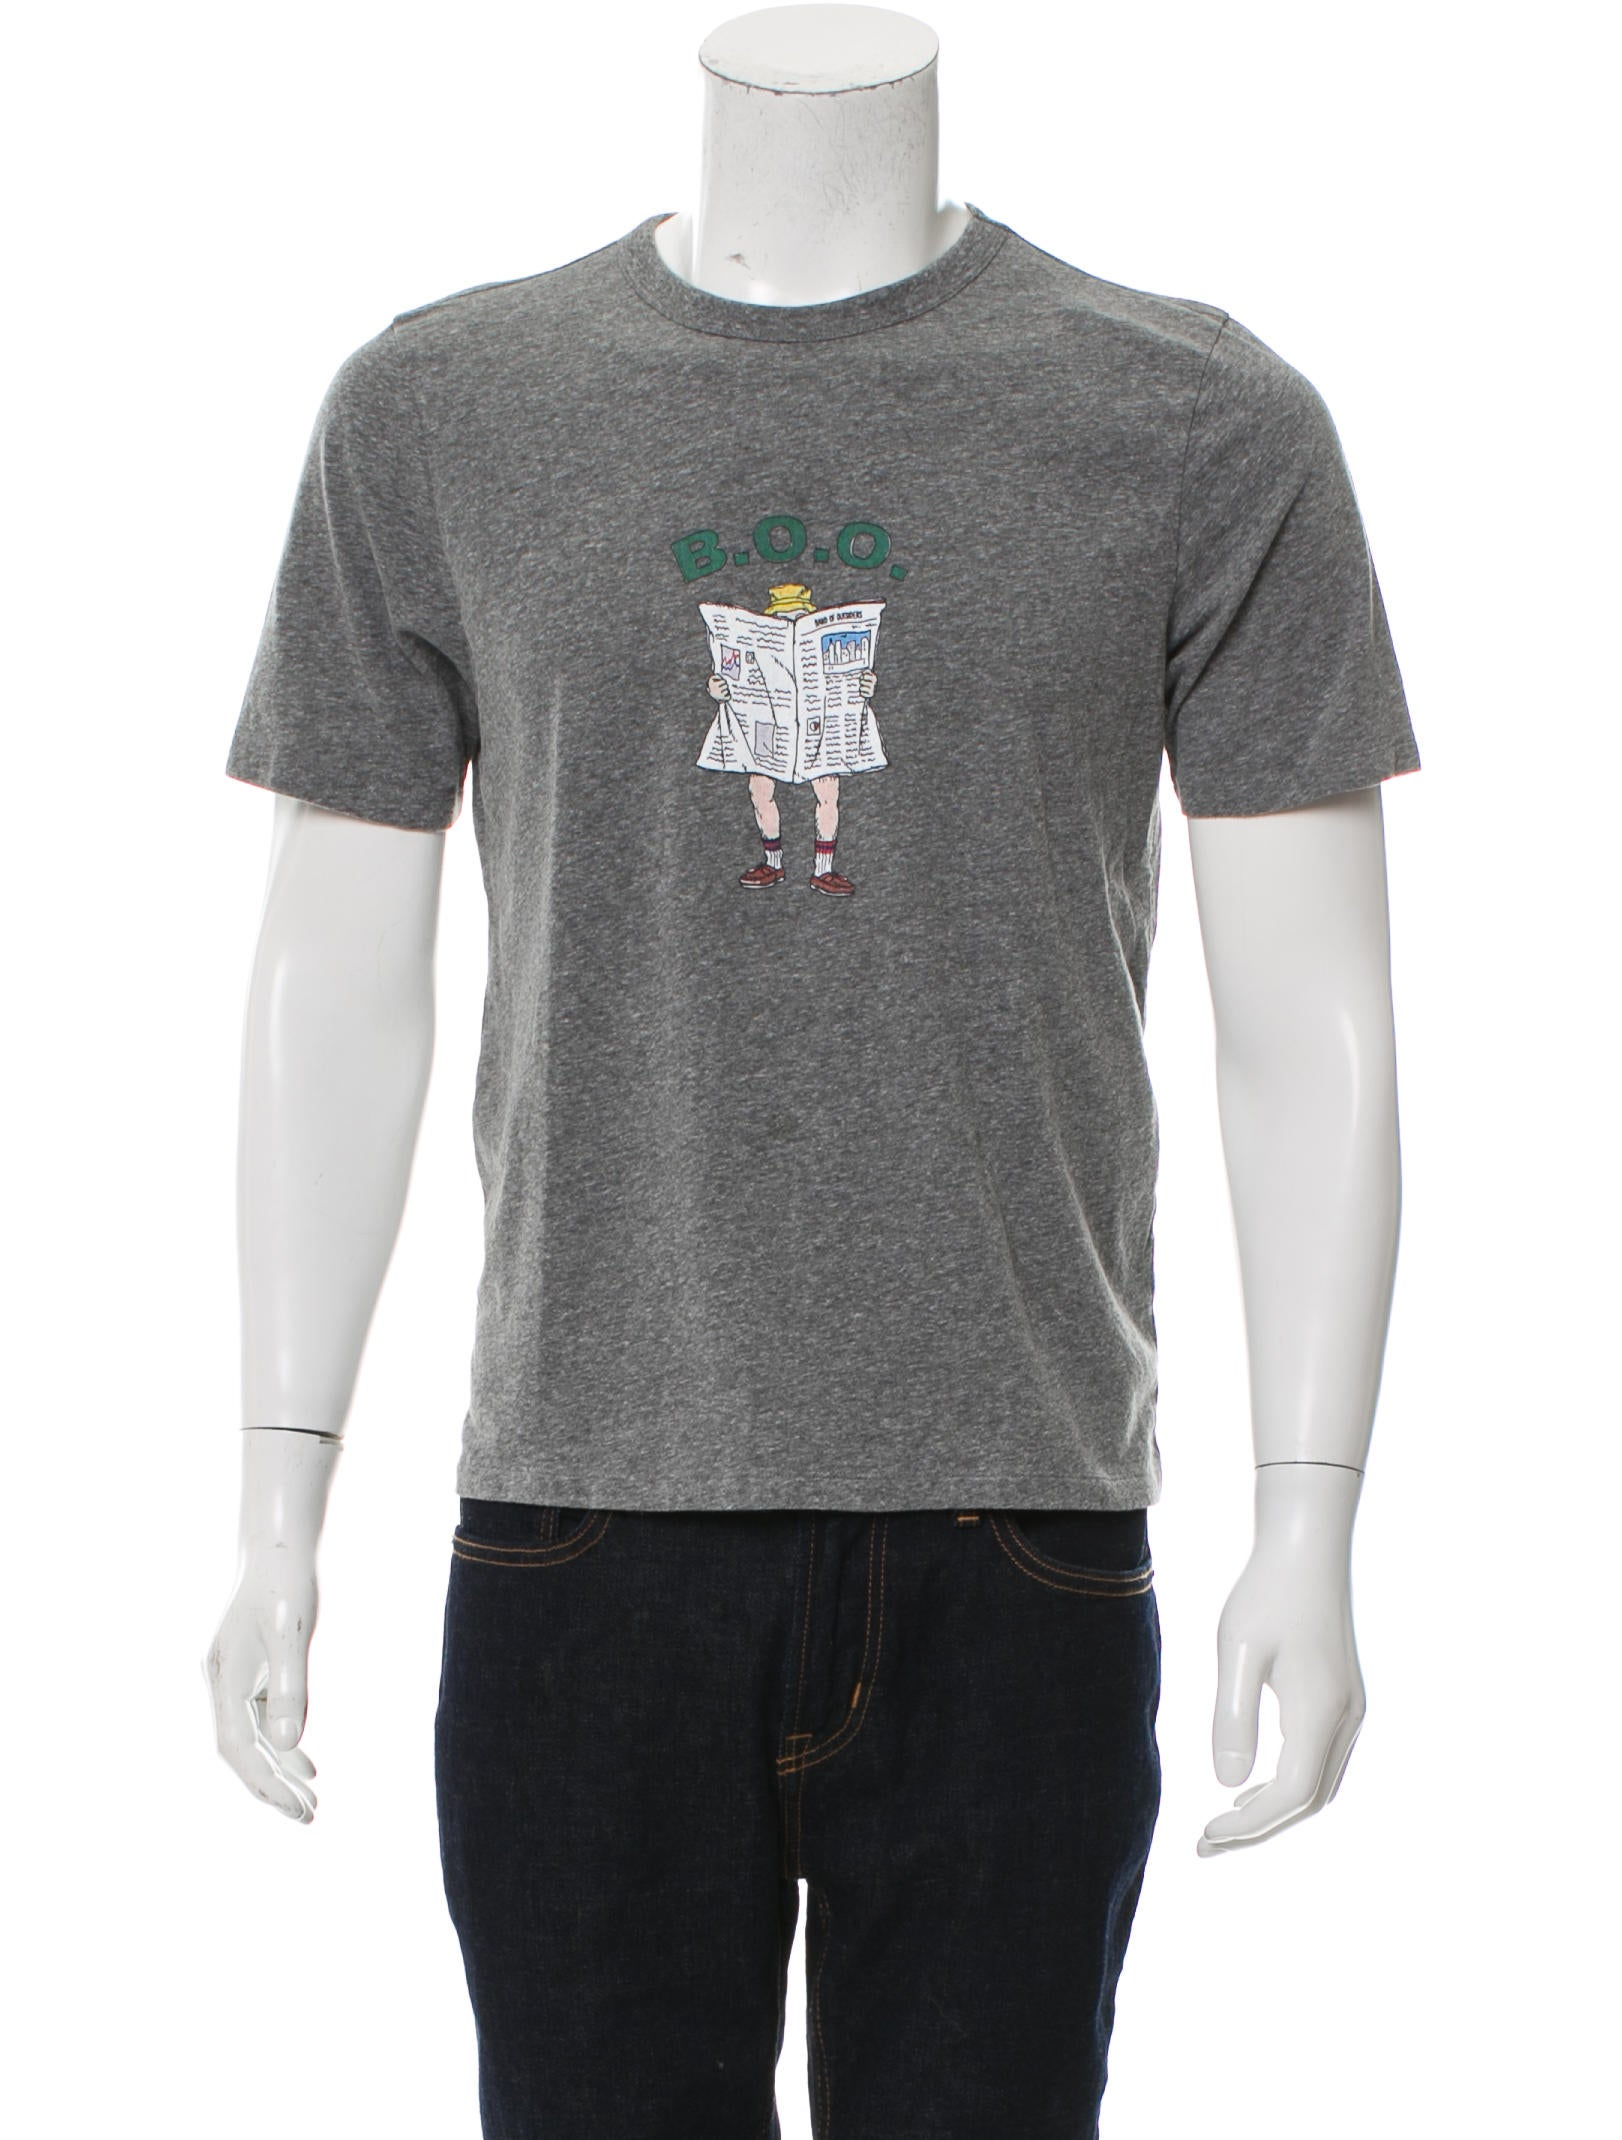 Band of outsiders graphic print crew neck t shirt for T shirt graphic printing